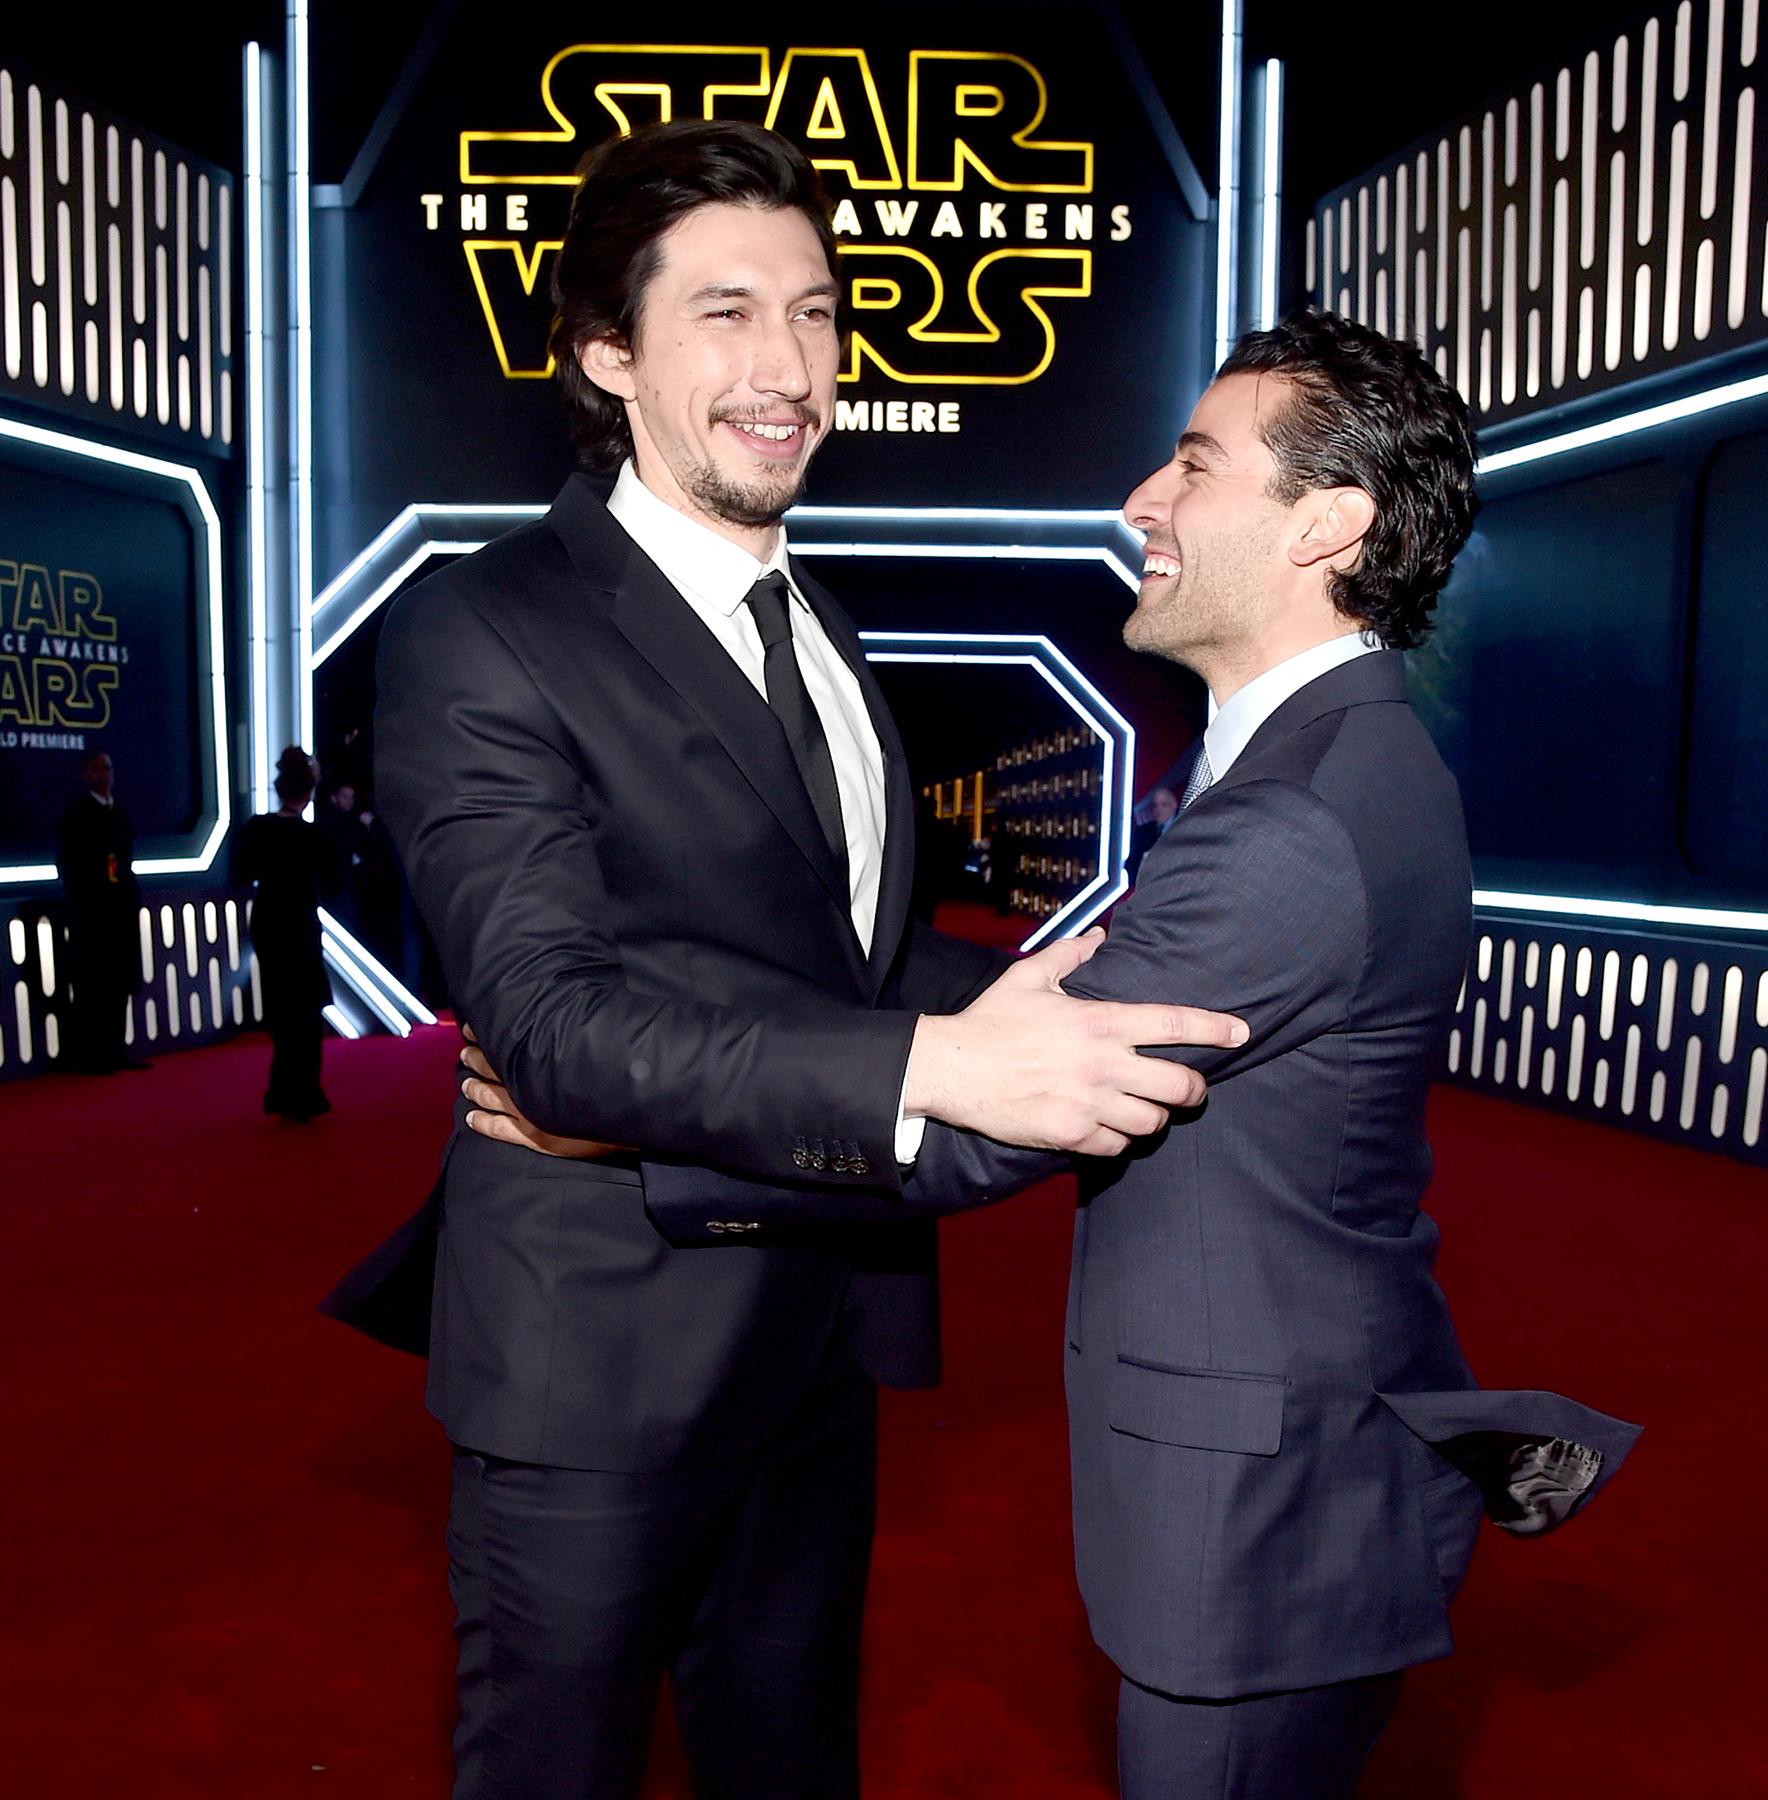 Adam Driver and Oscar Isaac attend the world premiere of